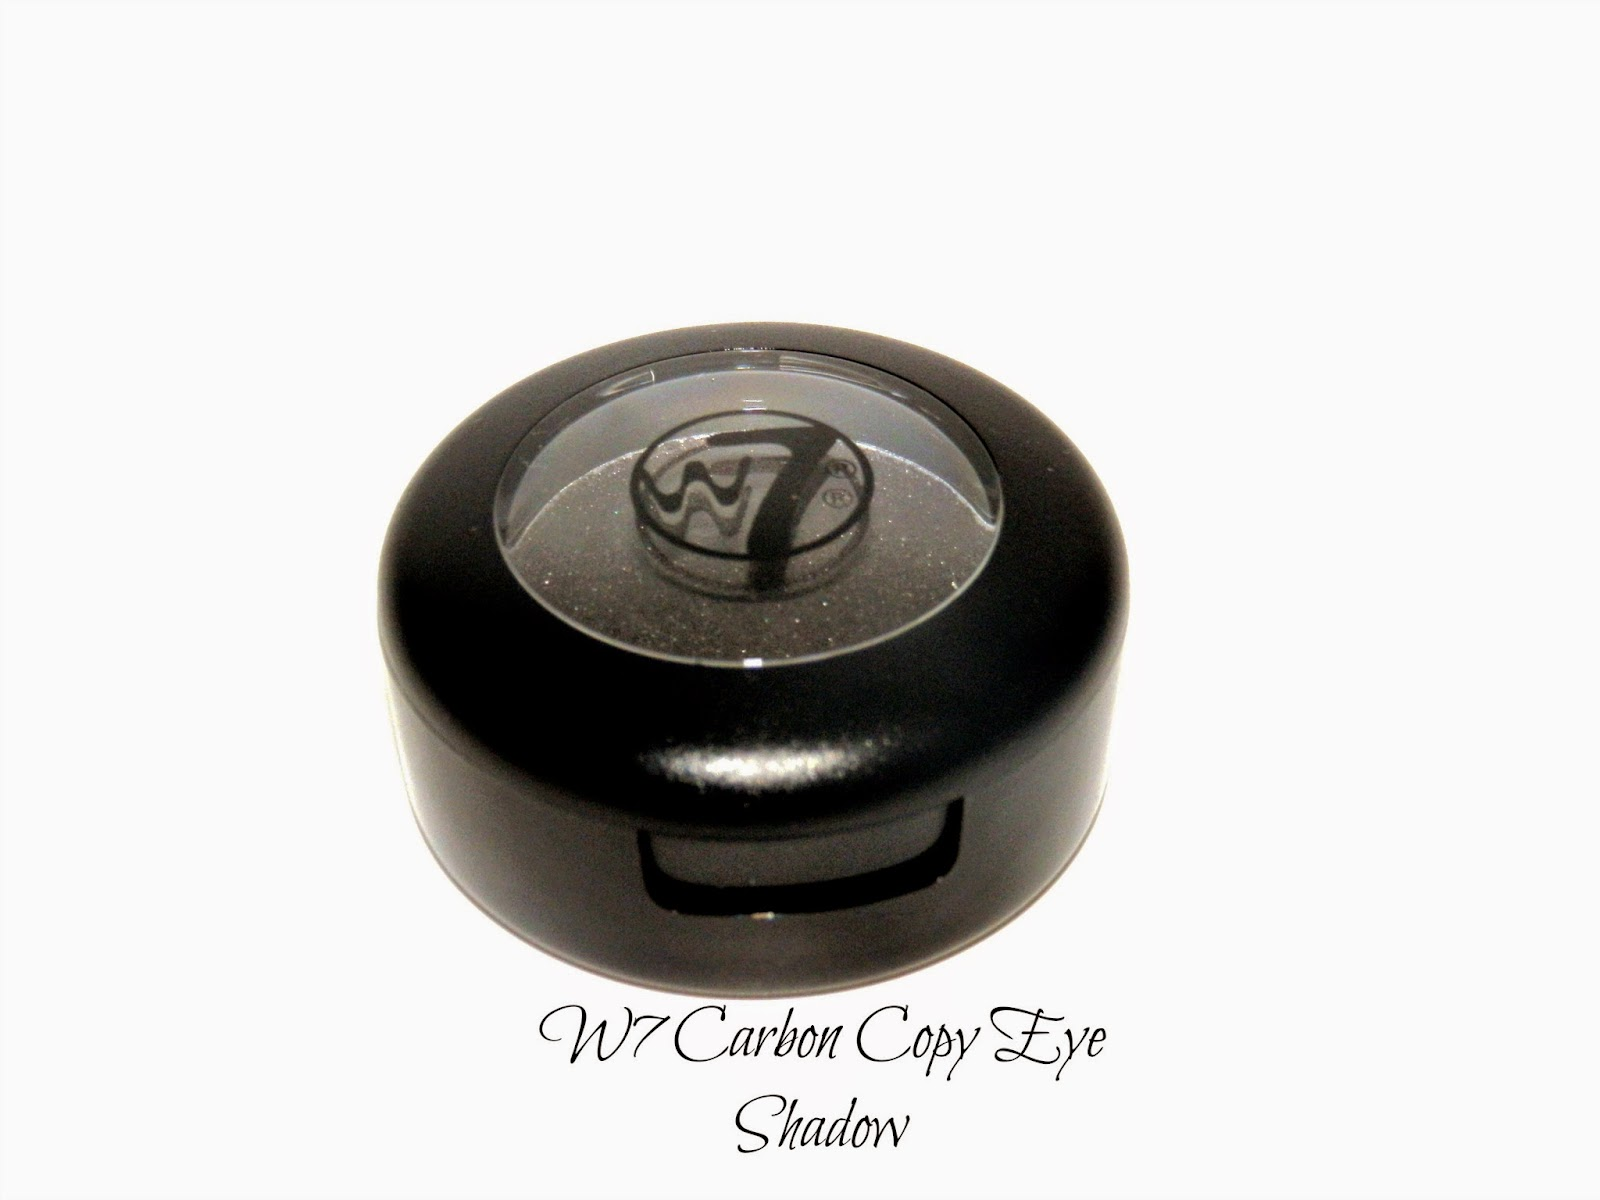 W7 Carbon Copy Eye Shadow Swatches